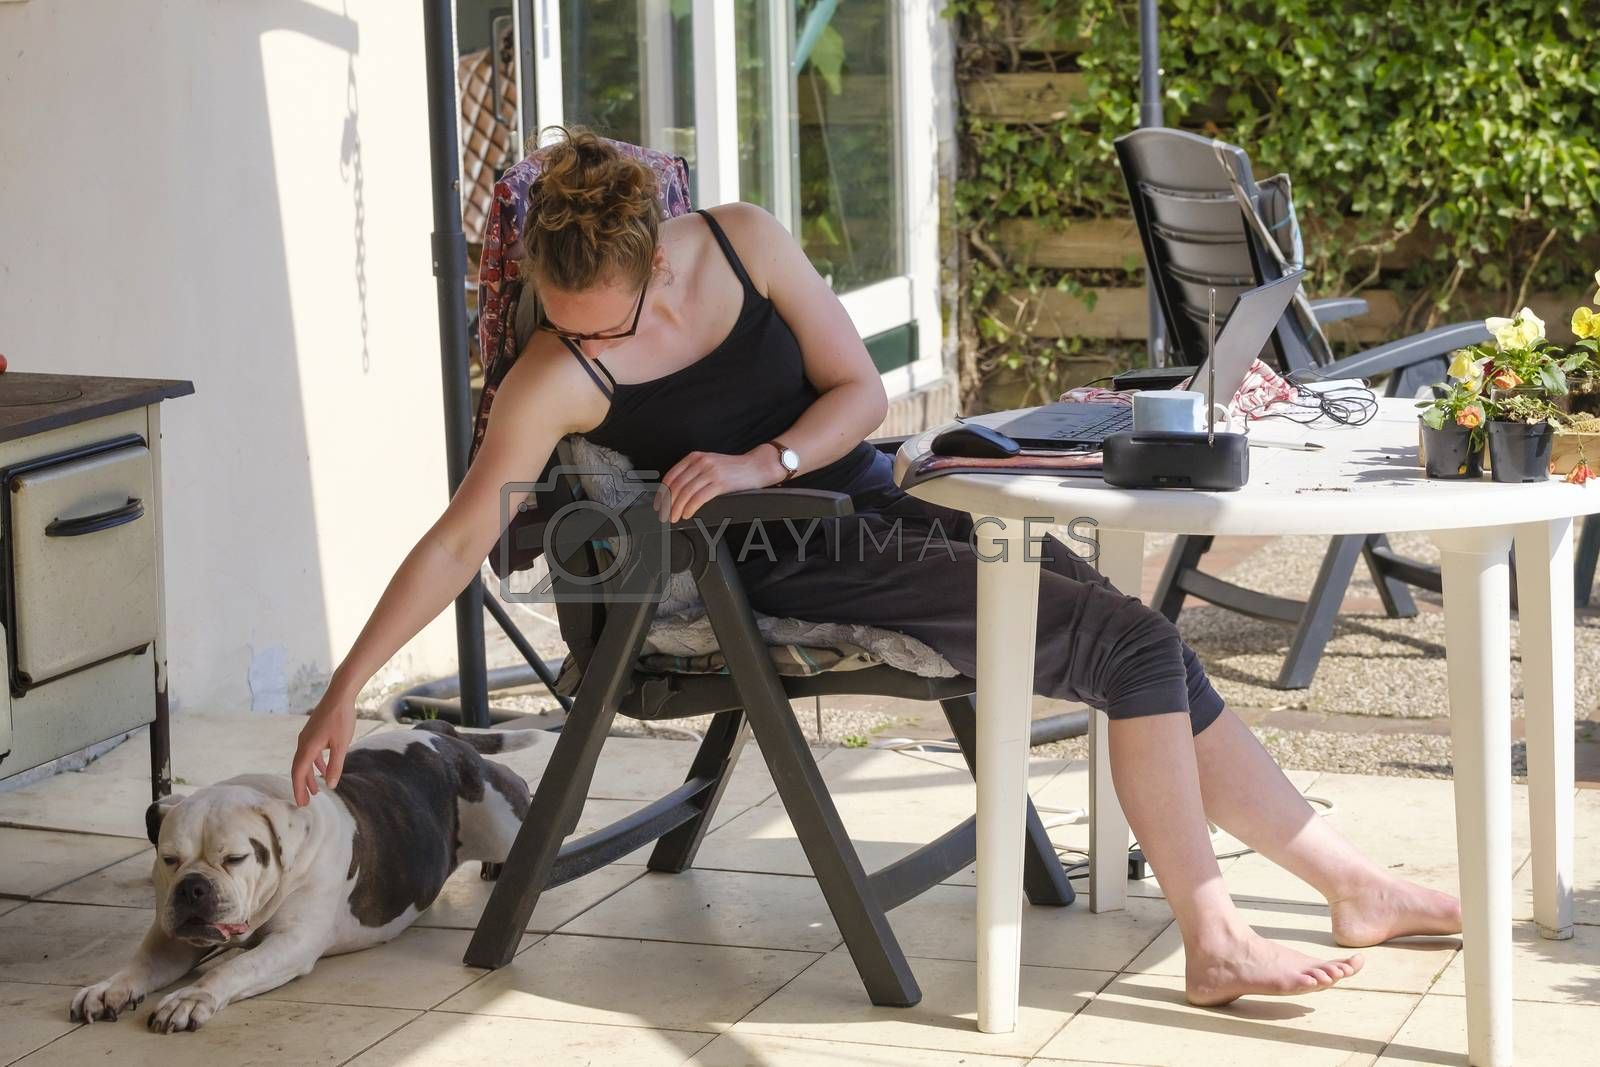 Derived from the work by an english bulldog, having fun at work. Working from home with laptop, smartphone and notebook in garden, during the lockdown, concept: Covid-19.